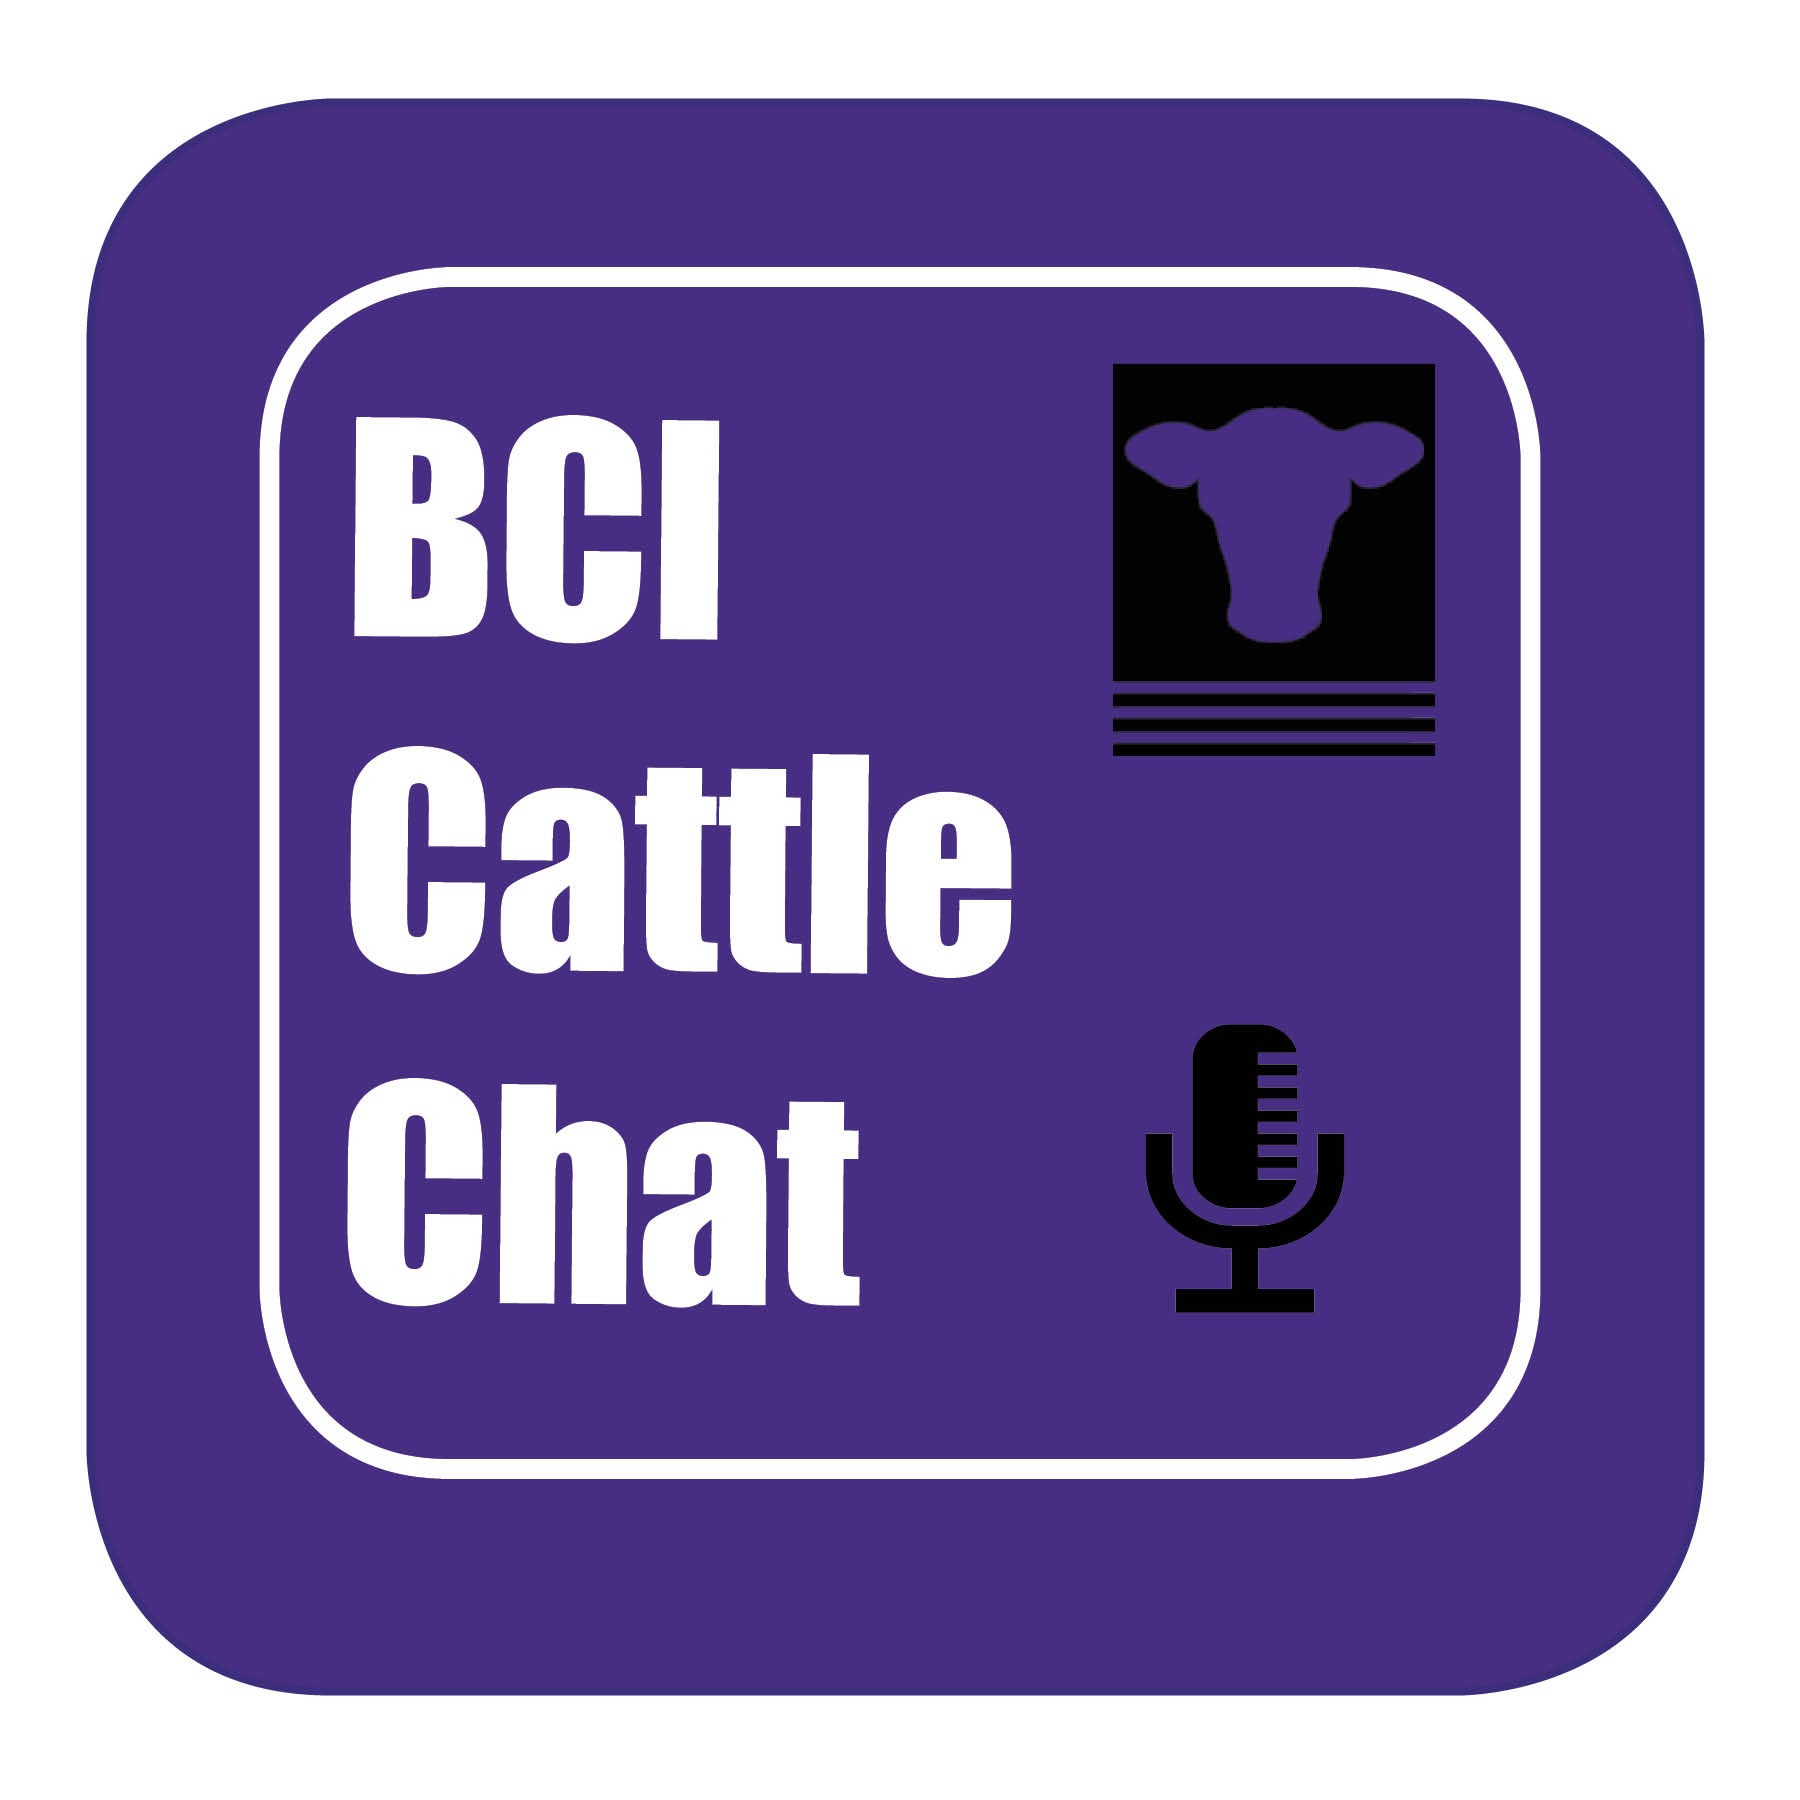 BCI Cattle Chat - Episode 29